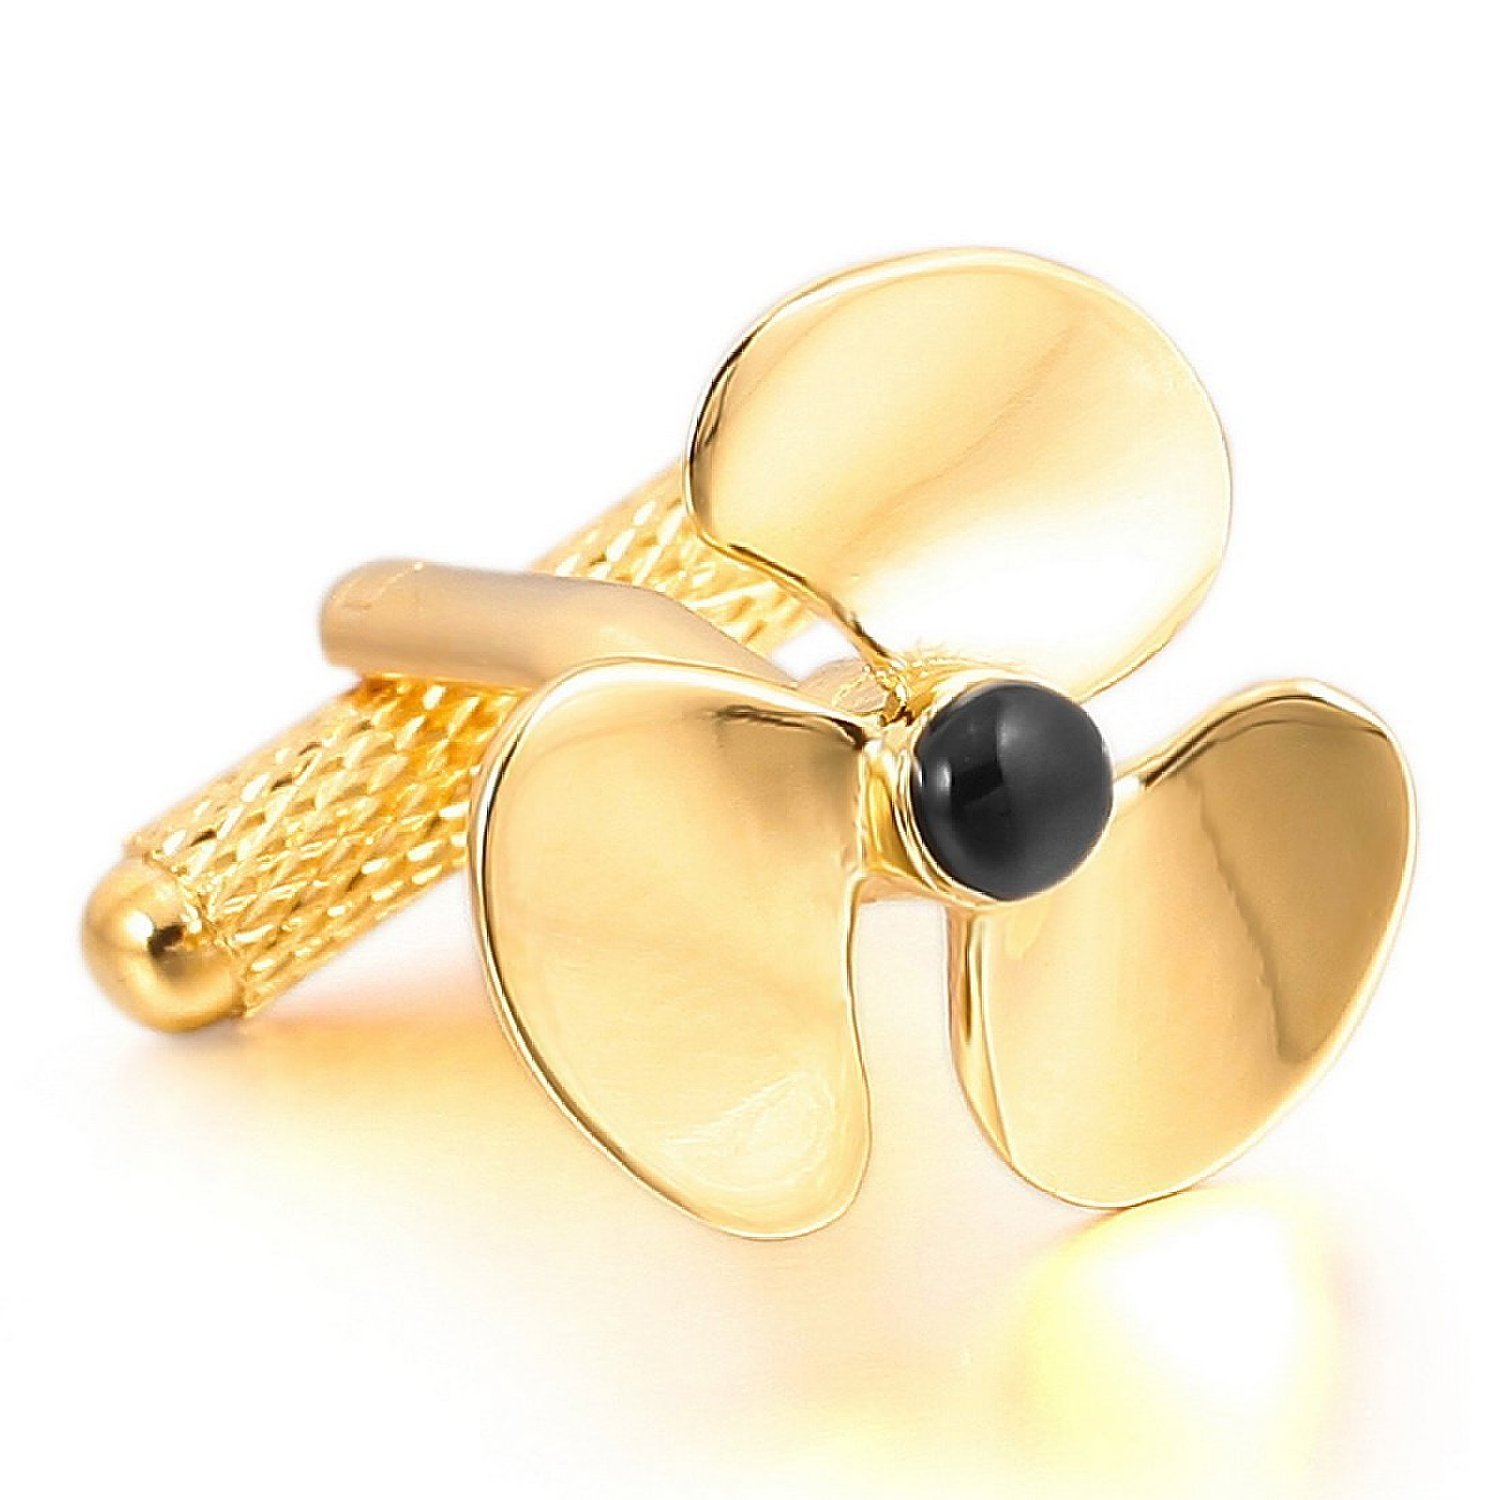 Gold Propeller Tie Clip Men/'s Accessories Gift Moving Spinner